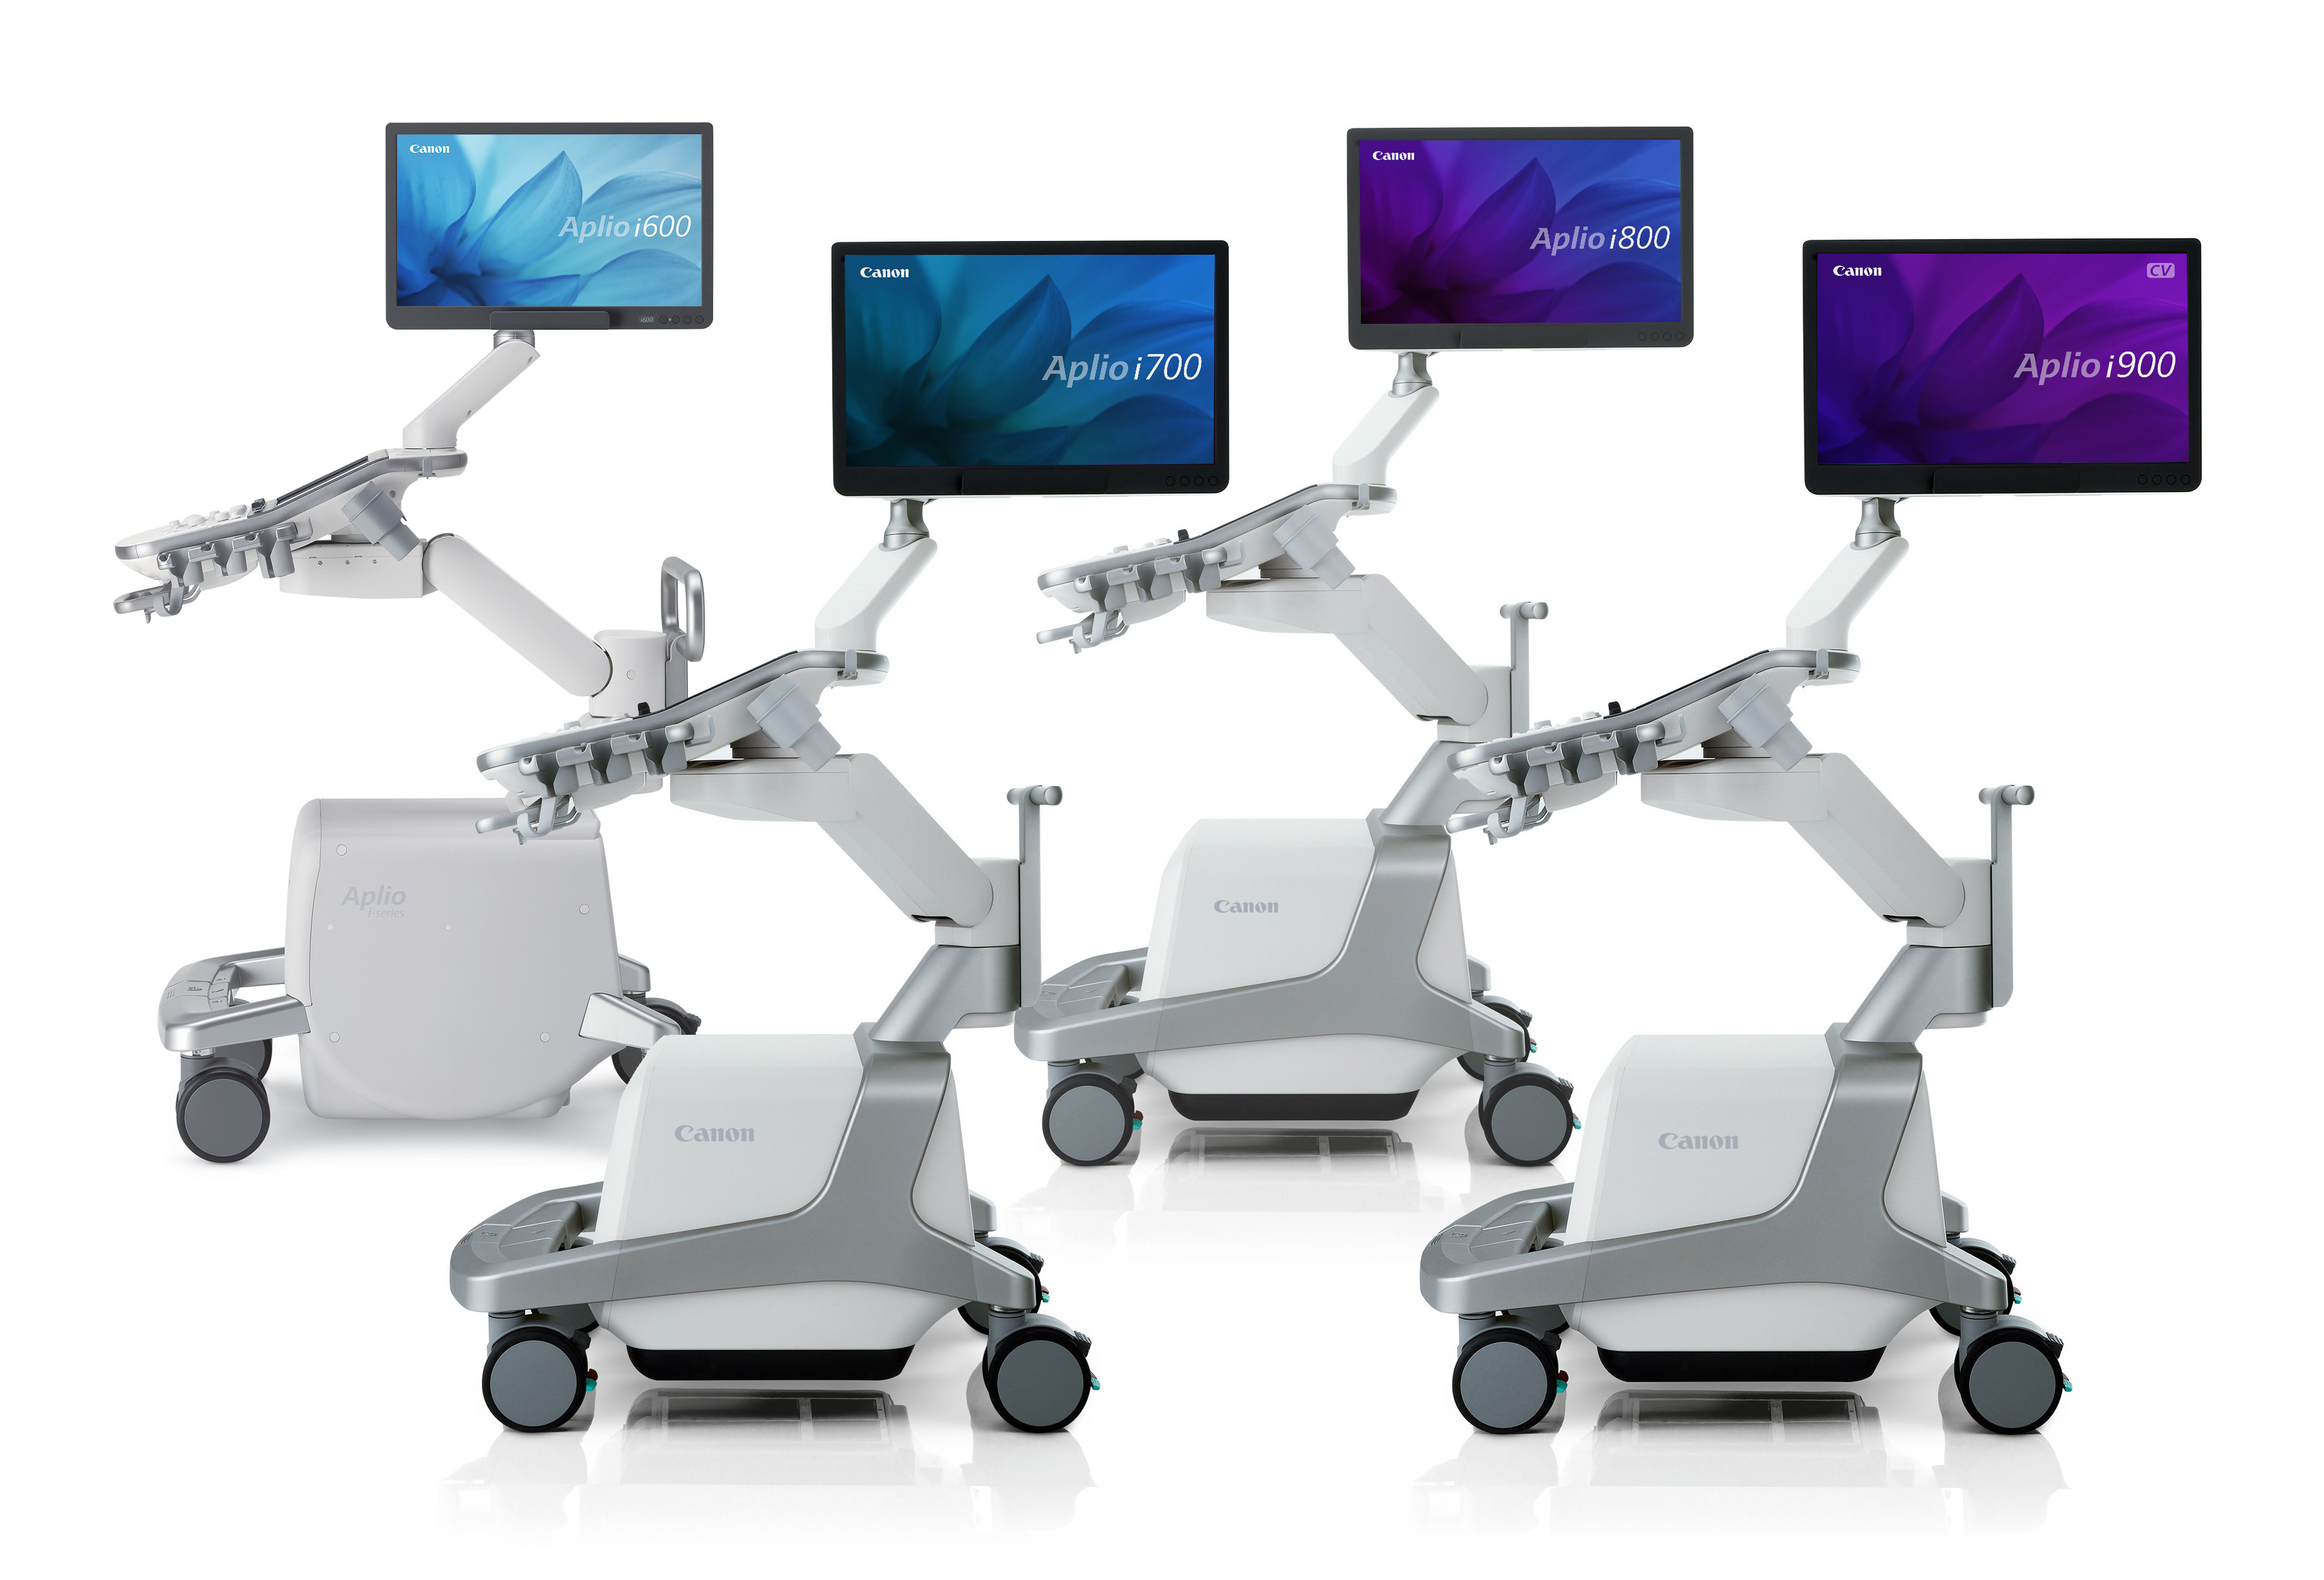 This is the Canon Aplio series of ultrasound systems.